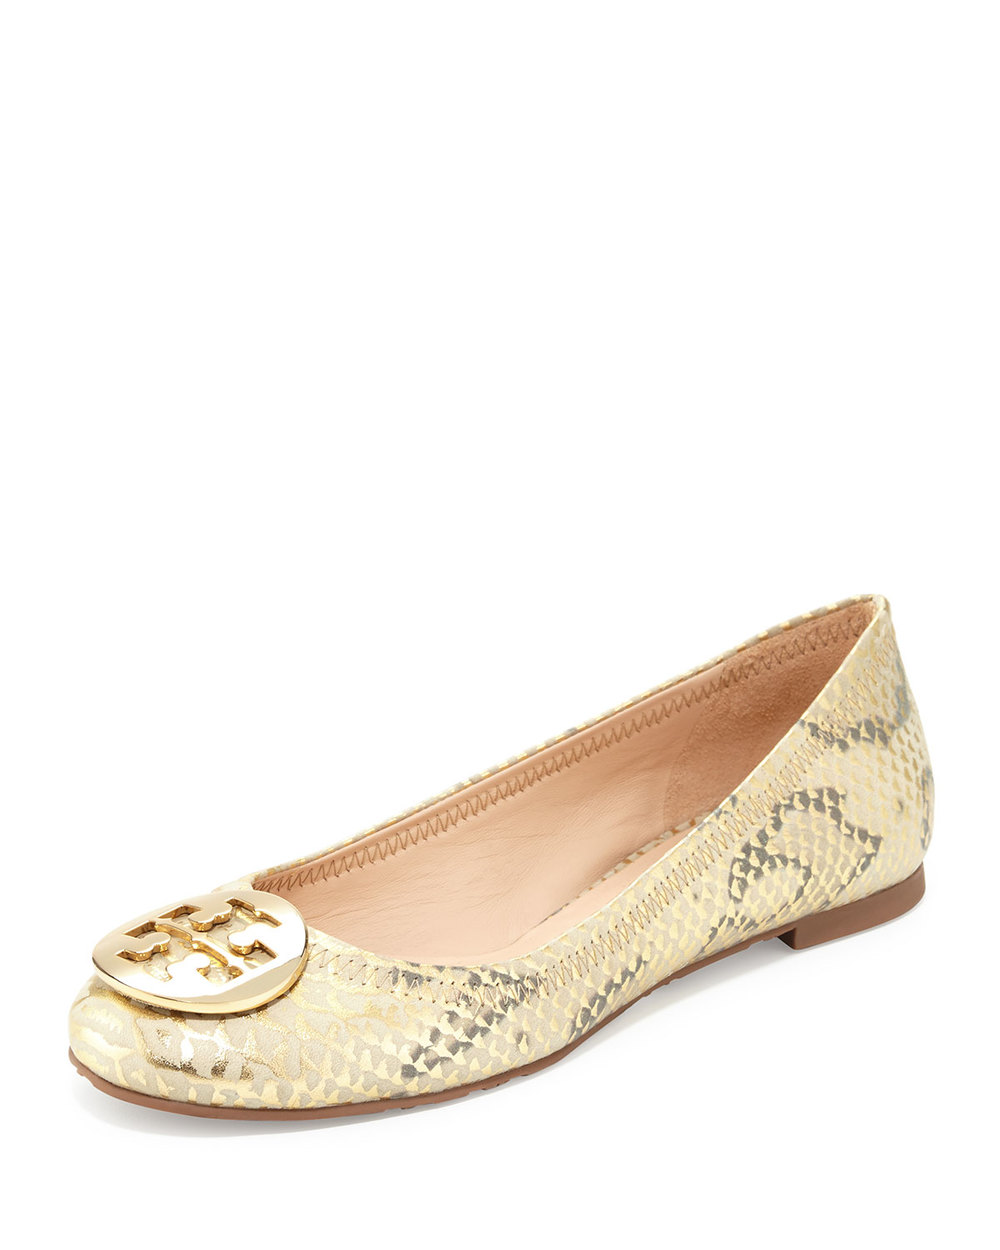 TORY BURCH REVA METALLIC BALLERINA FLAT, NATURAL GOLD as $250 now $149.60